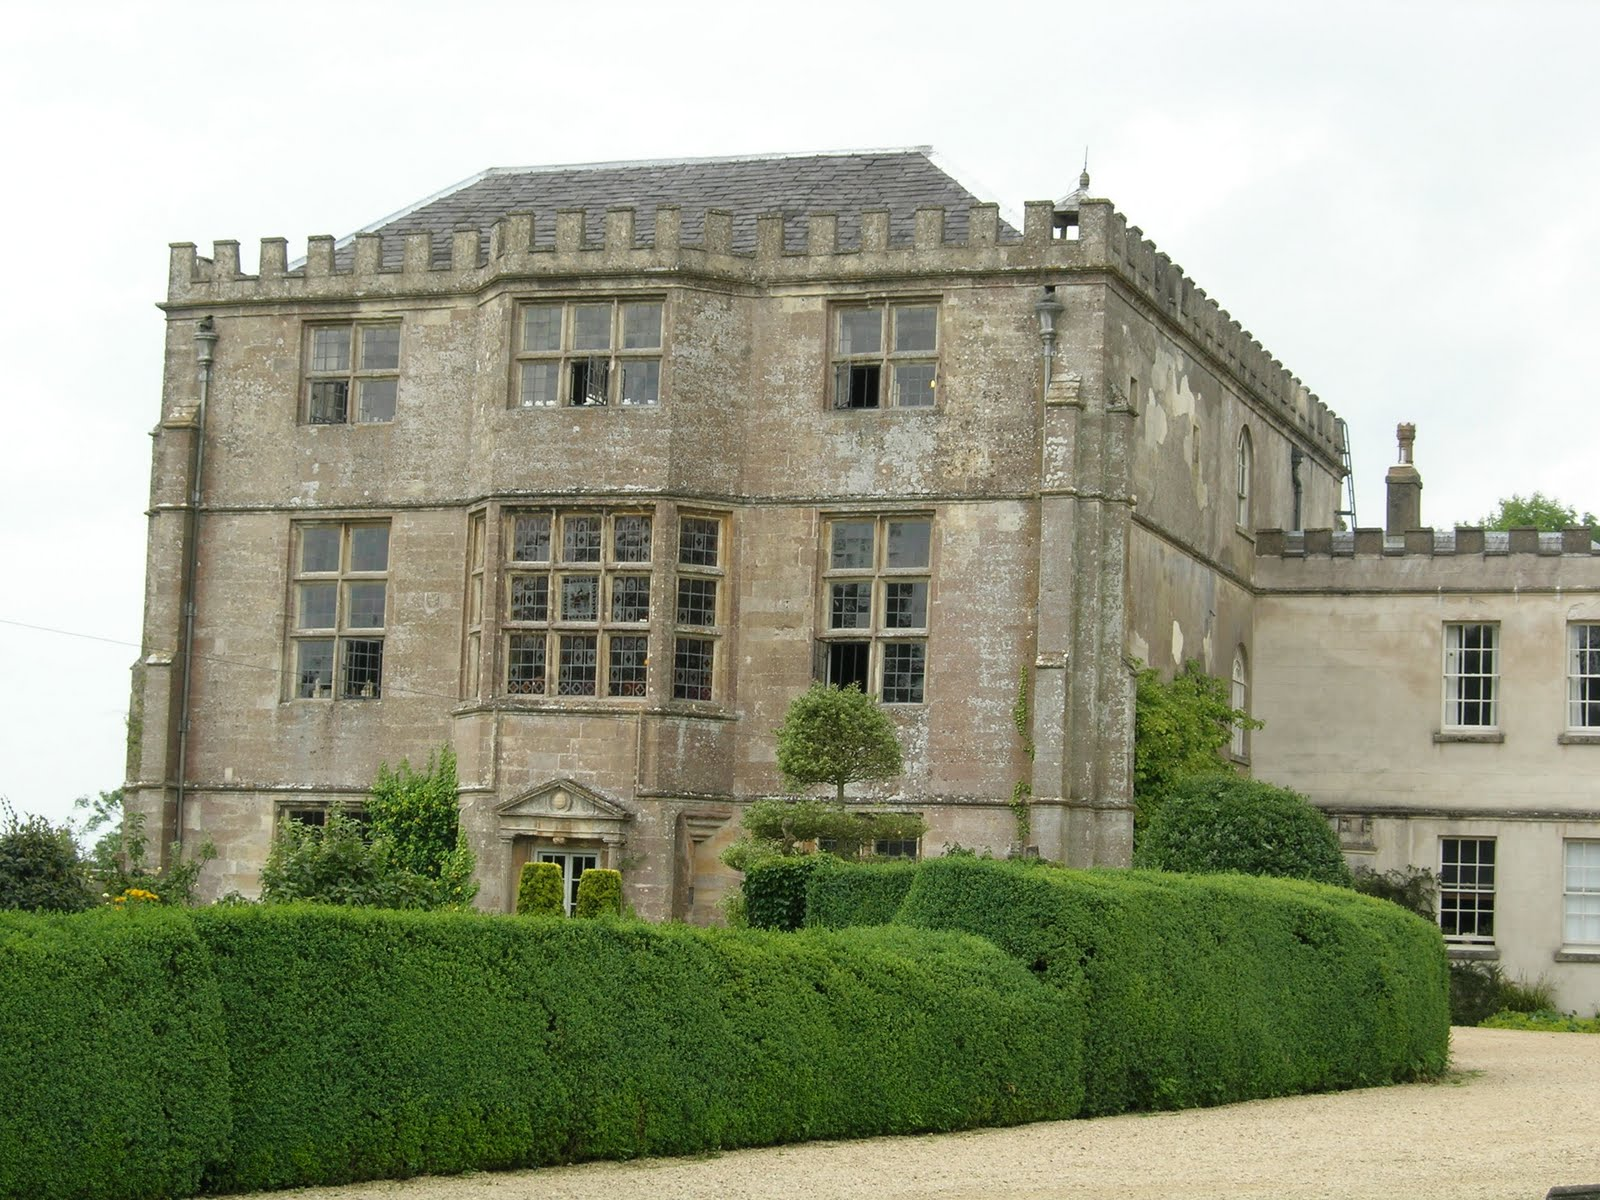 A Restored Hunting Lodge In Gloucestershire By Blue Badge Tour Guide